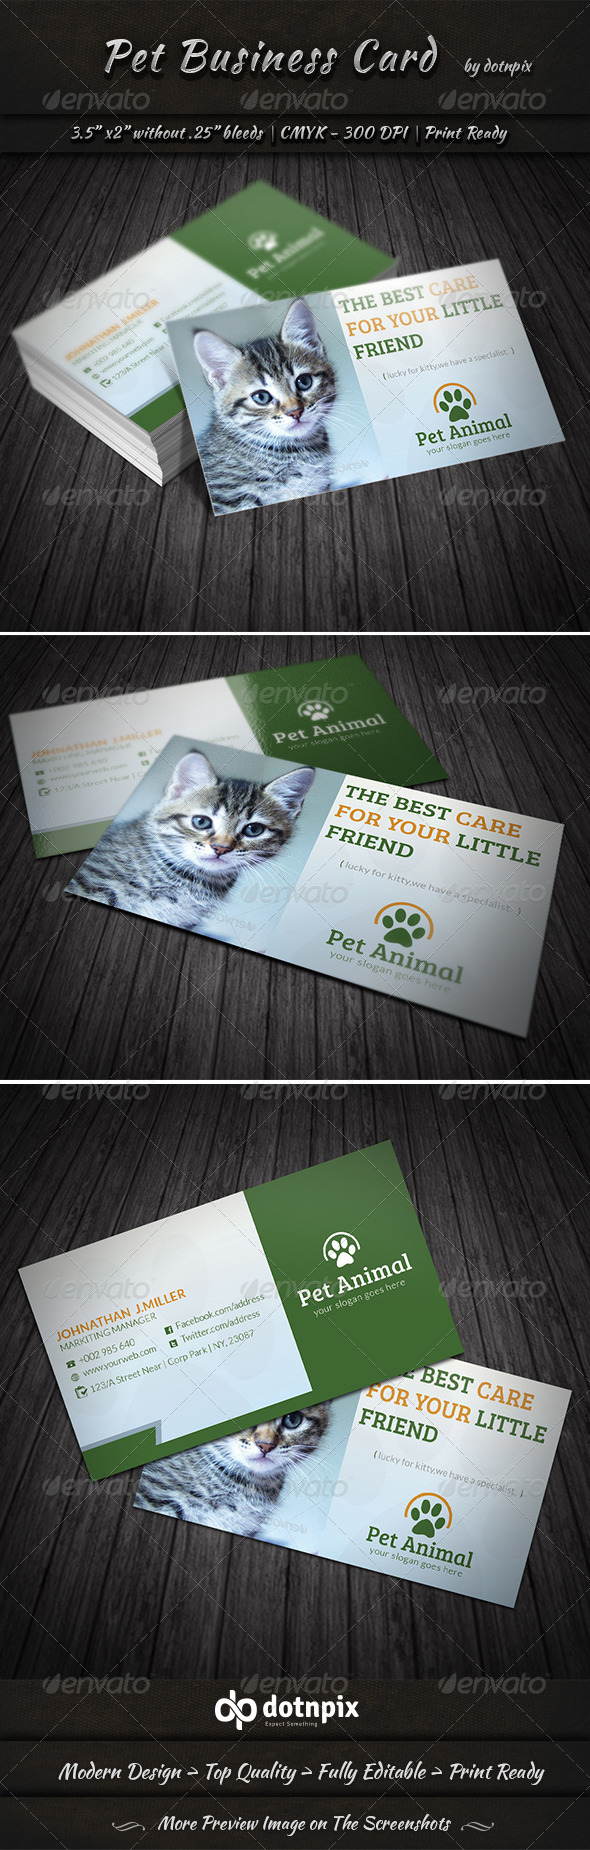 Pet Business Card - Corporate Business Cards